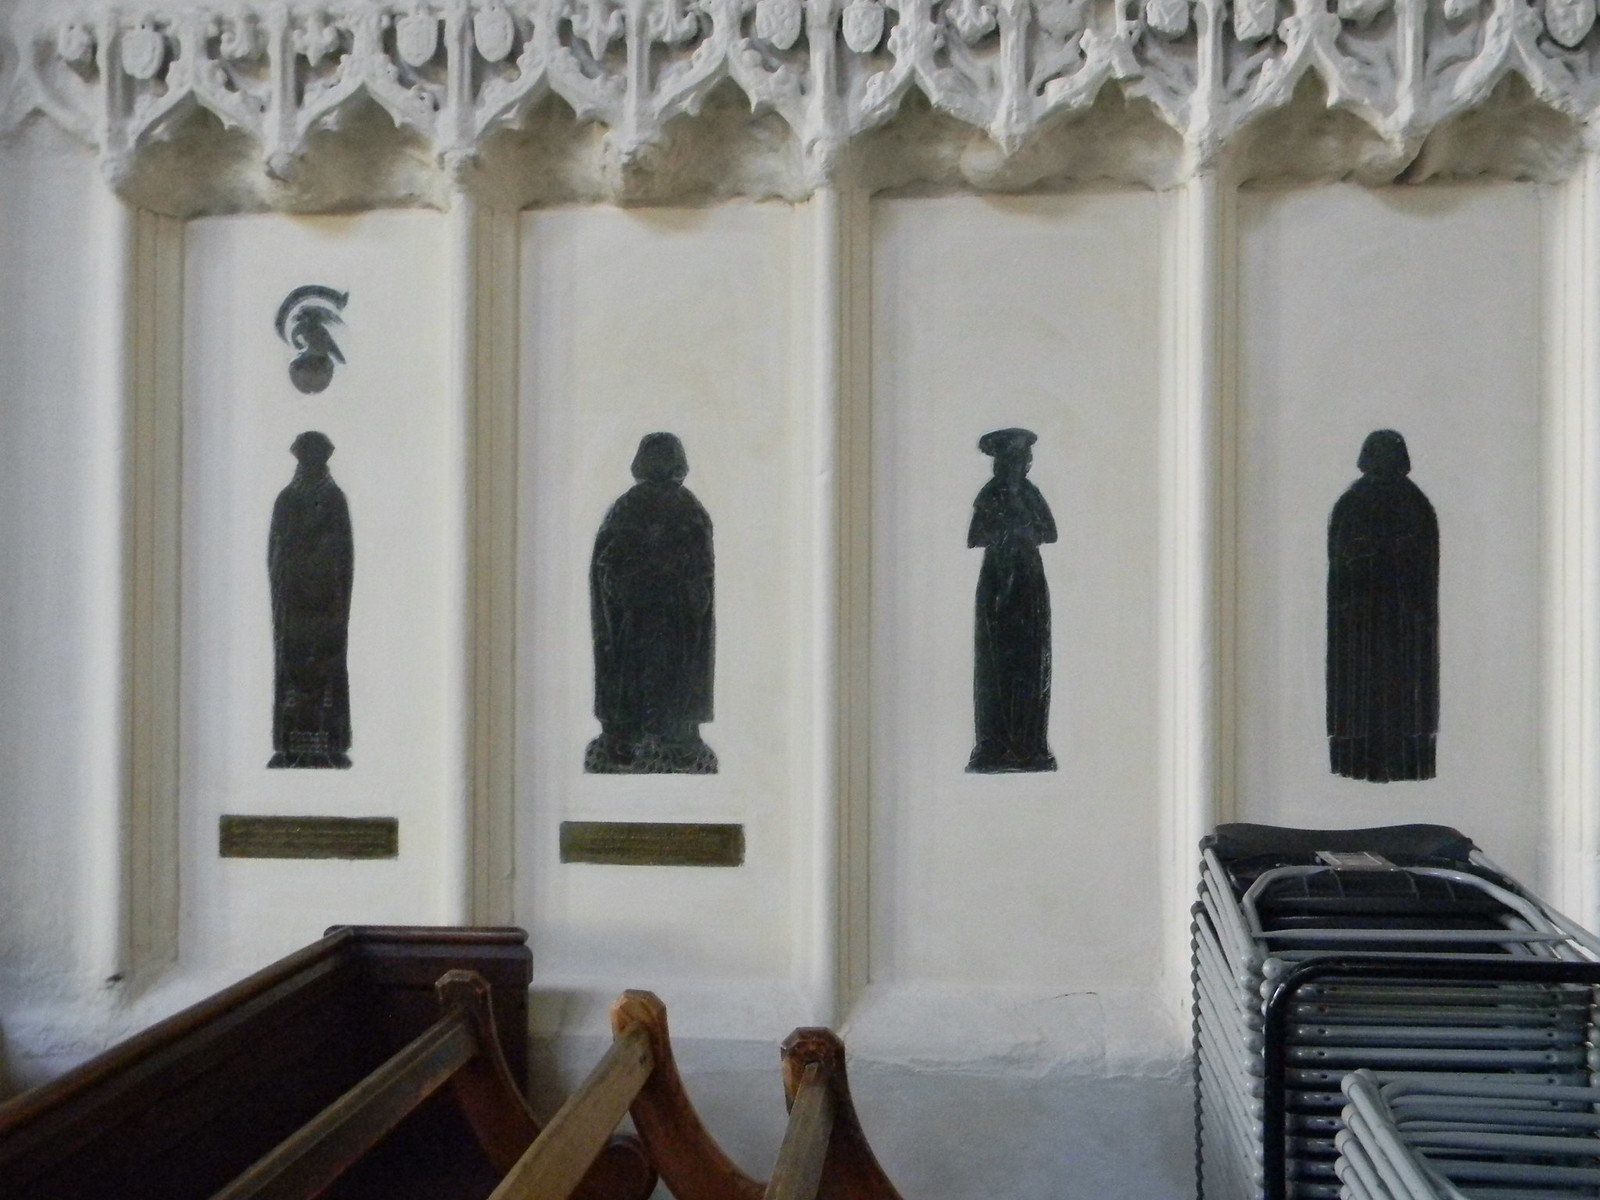 Displaced brasses - assorted geysers Vandalised during the dissolution and placed in the wall. It looks like they've had a couple of visits from Darth Vader as well (images 2 and 4). St Mary's church, Saffron Walden. Great Chesterford to Newport